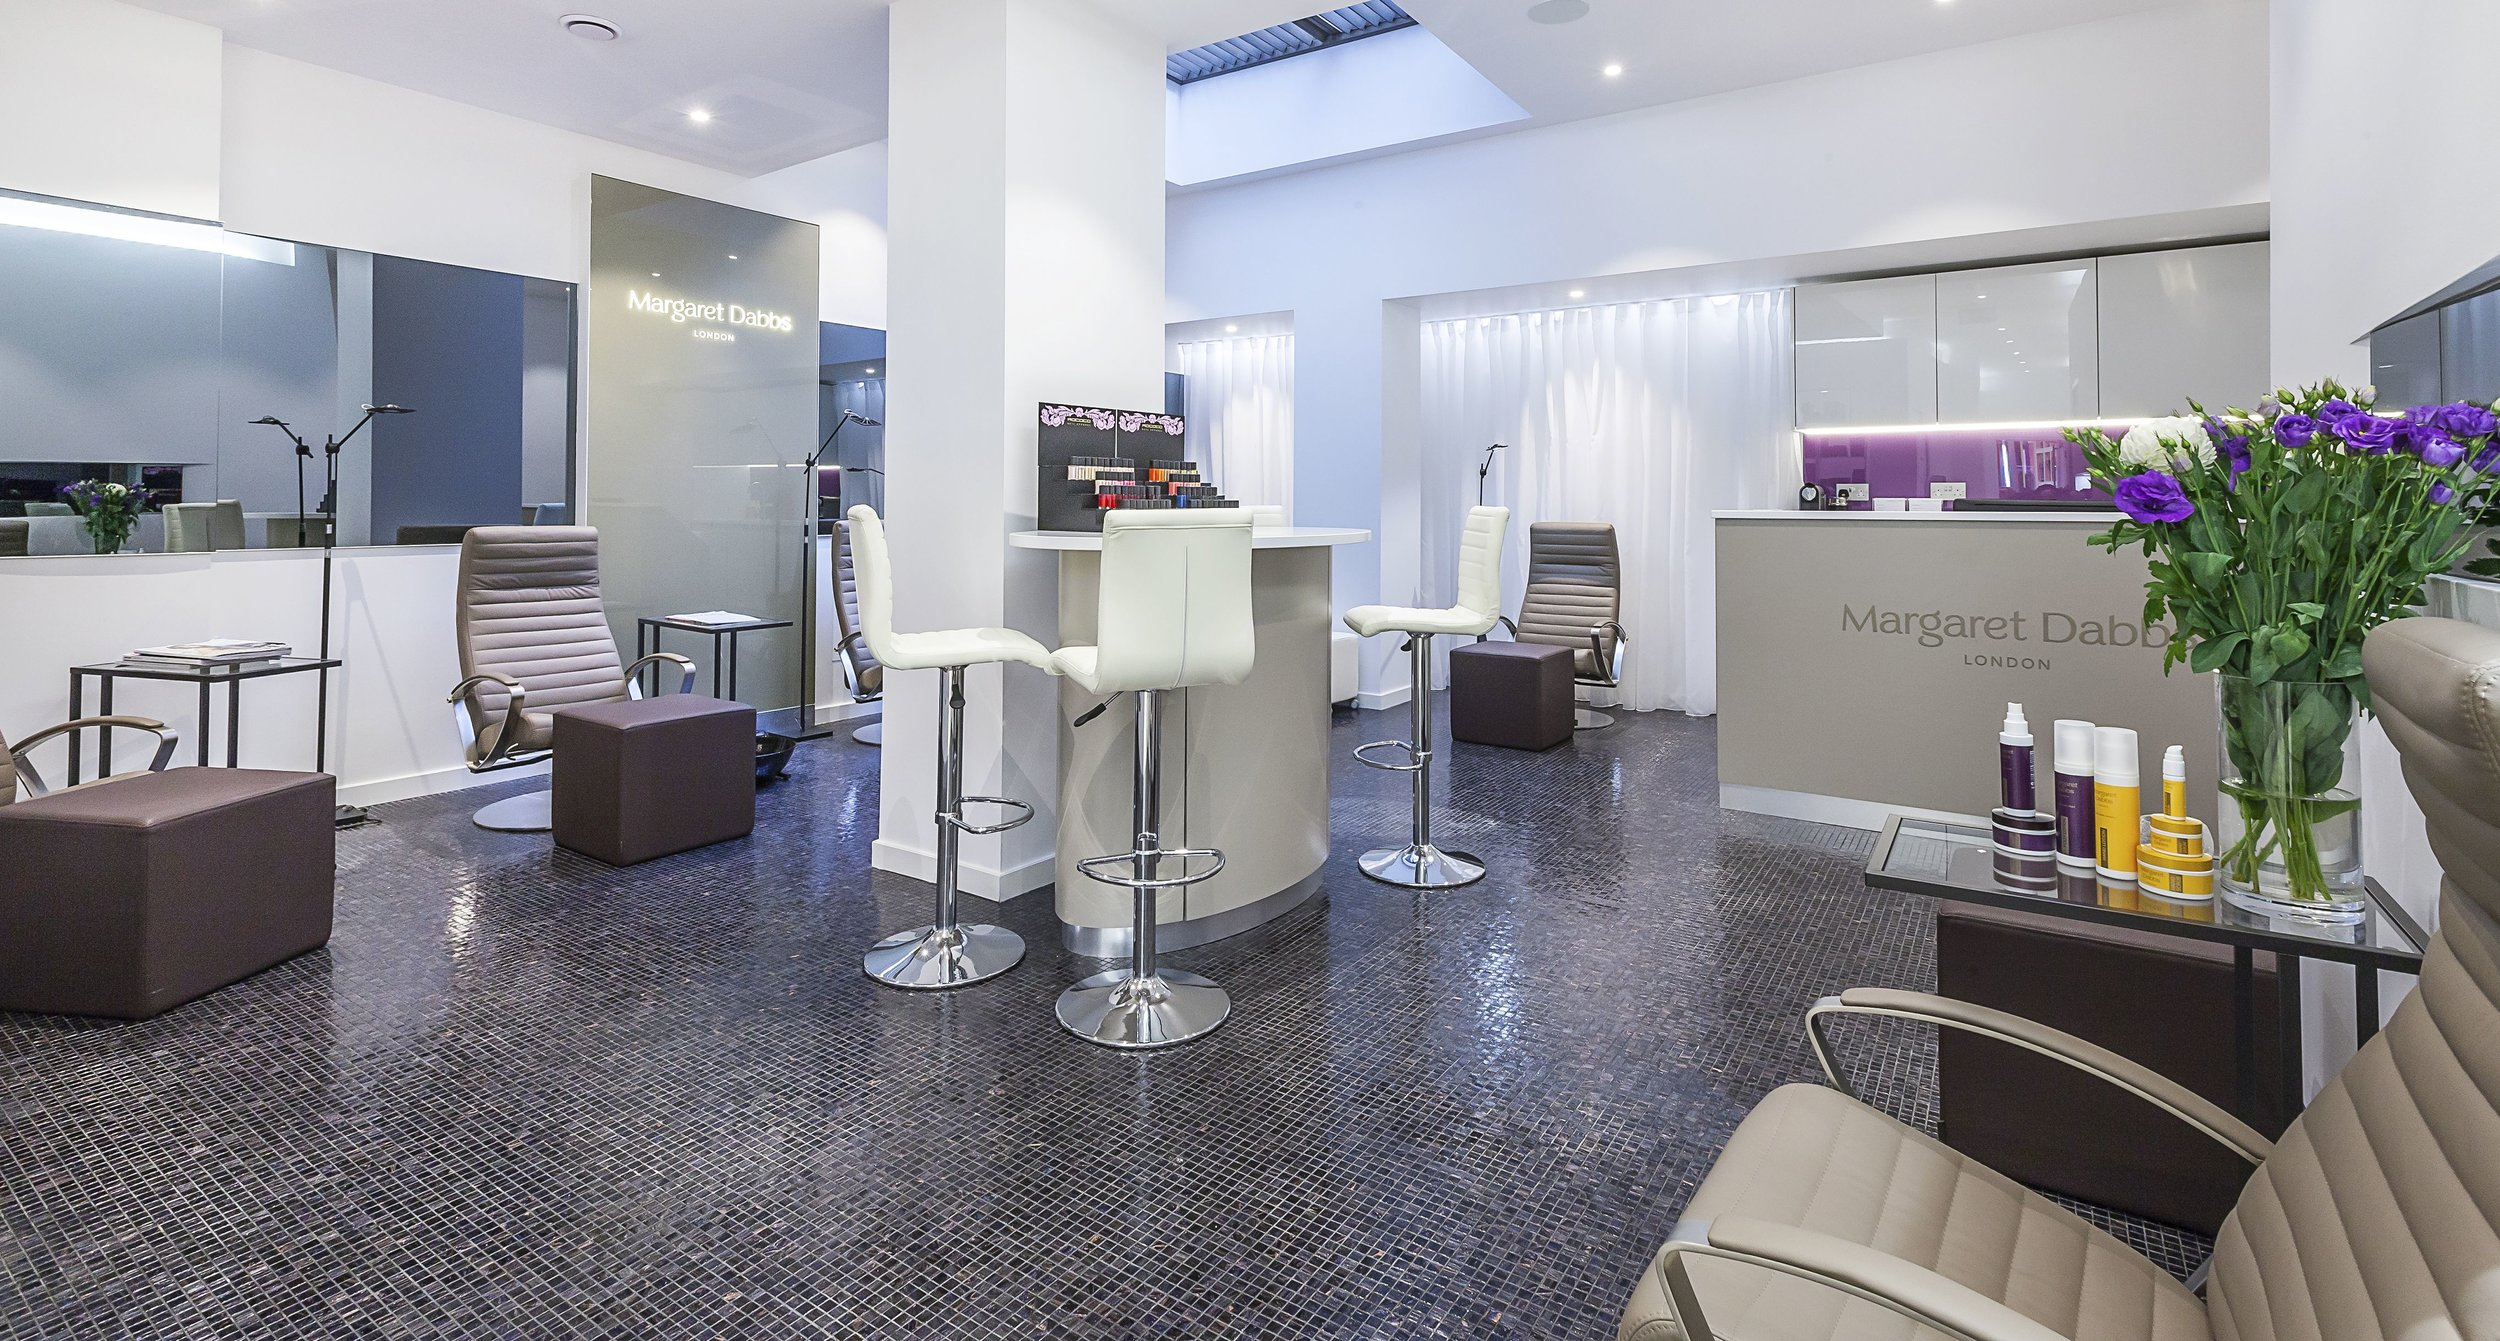 Margaret Dabbs Salon